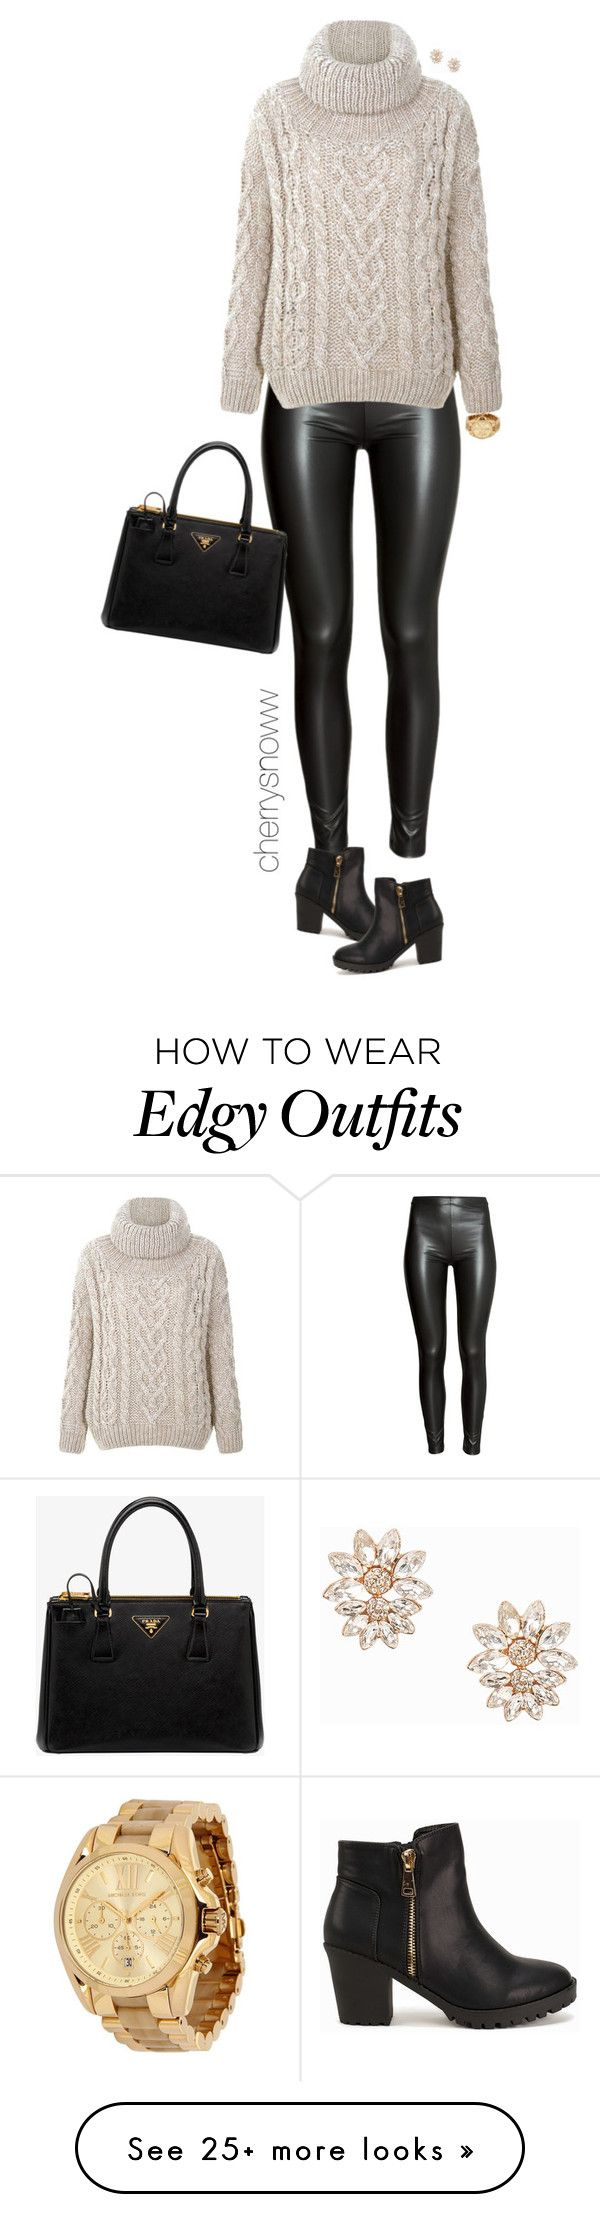 """Casual edgy chic fall outfit"" by cherrysnoww on Polyvore featuring H&M, Prada, Michael Kors and NLY Accessories"